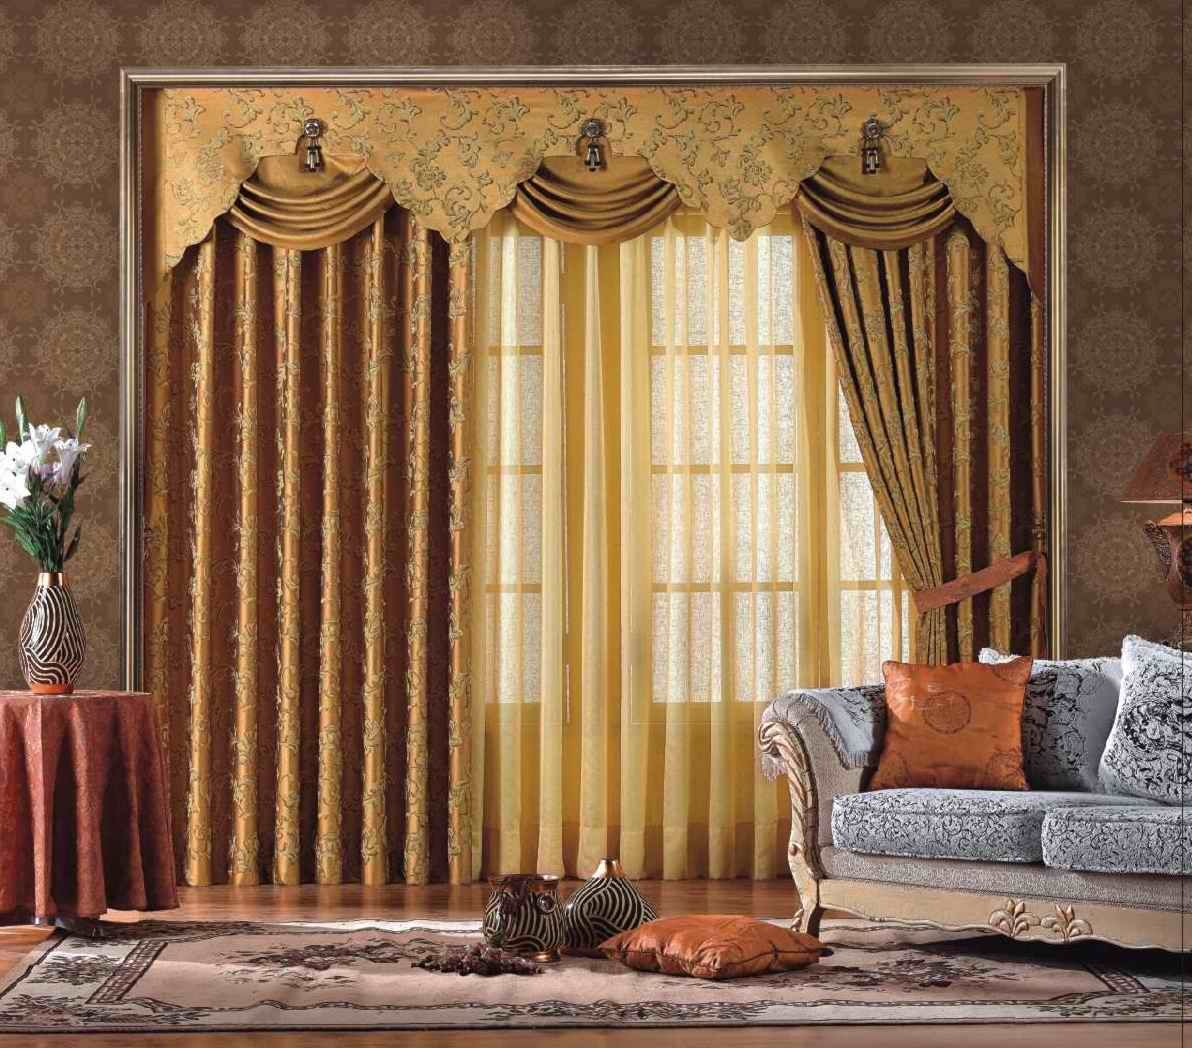 enhance your room with various curtain styles drapery room ideas - Window Curtain Design Ideas